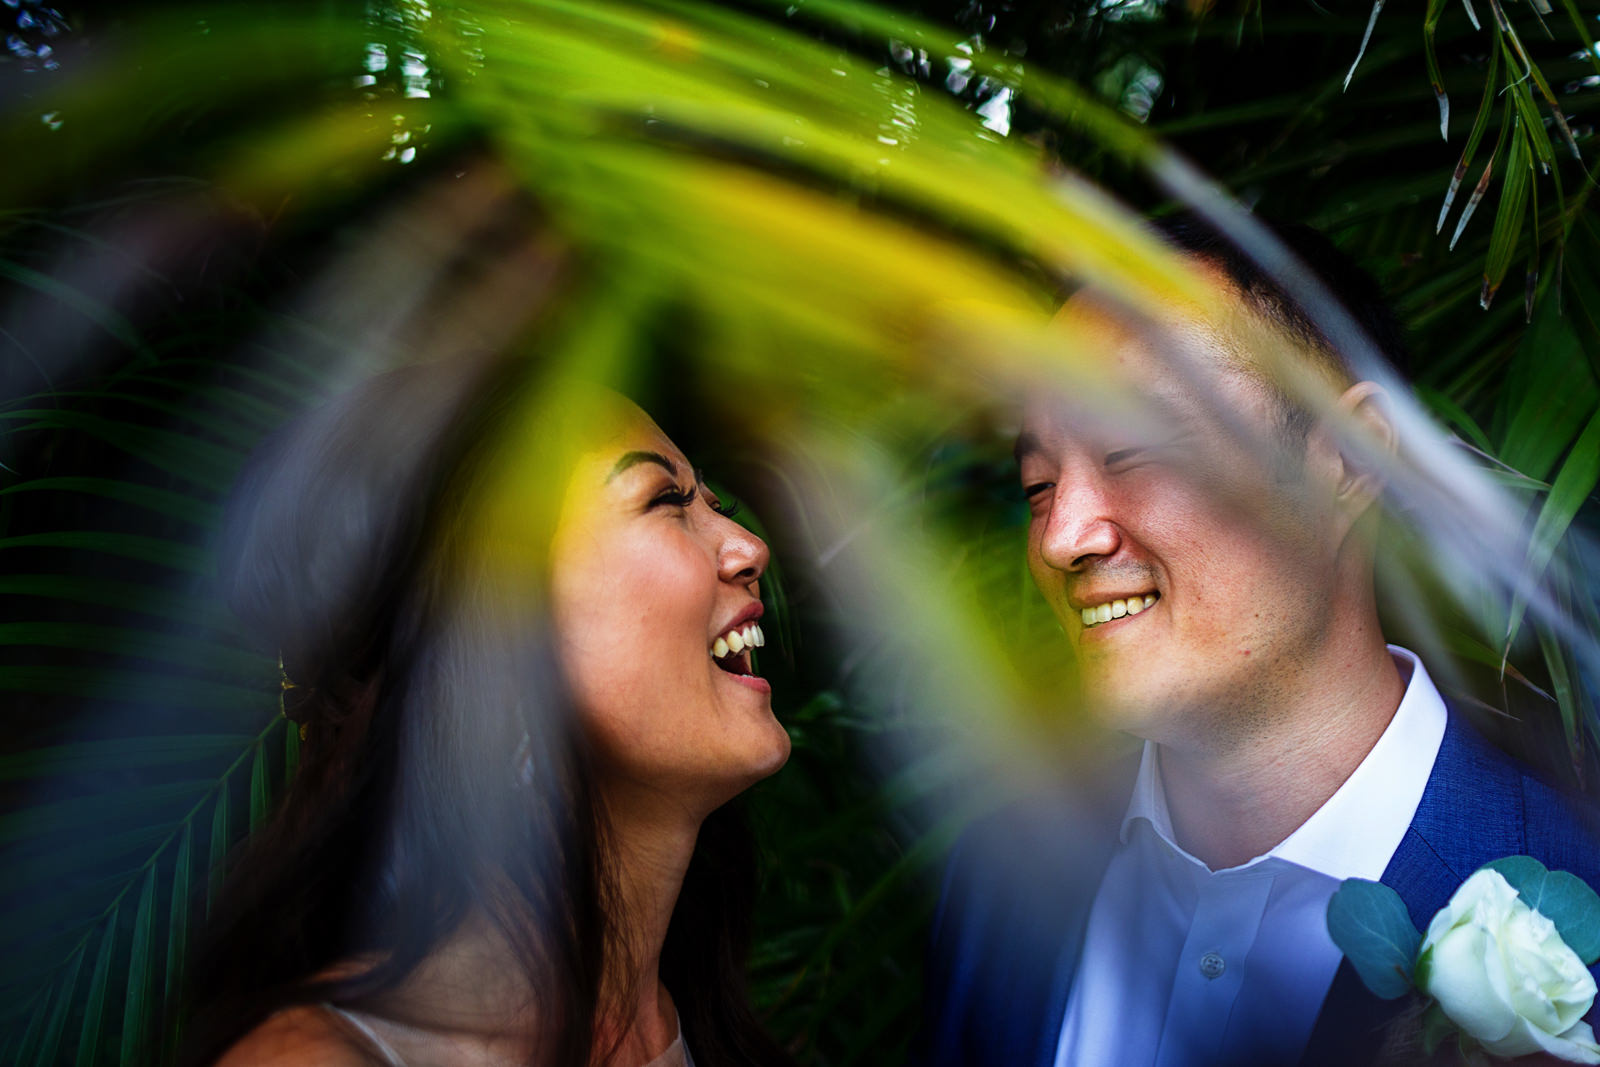 Groom and bride laughing under palm leaves